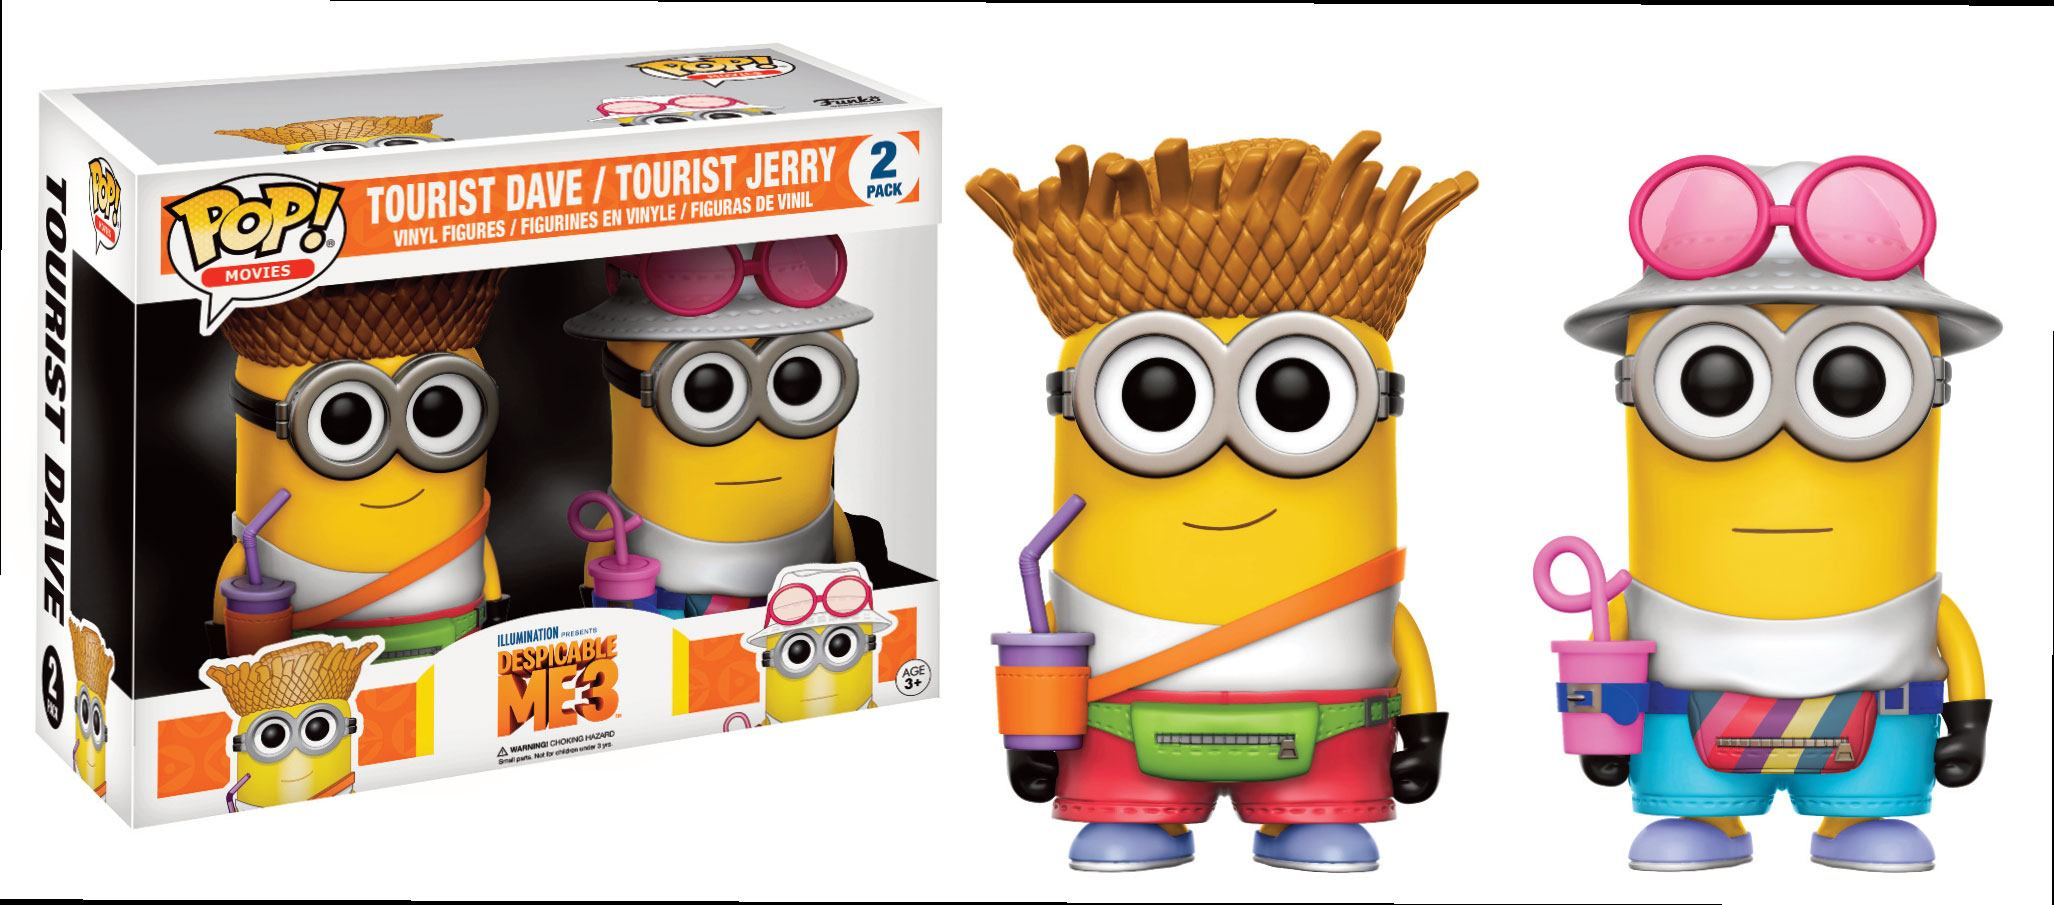 Despicable Me 3 POP! Marvel Vinyl Figures 2-Pack Tourist Dave & Tourist Jerry 9 cm